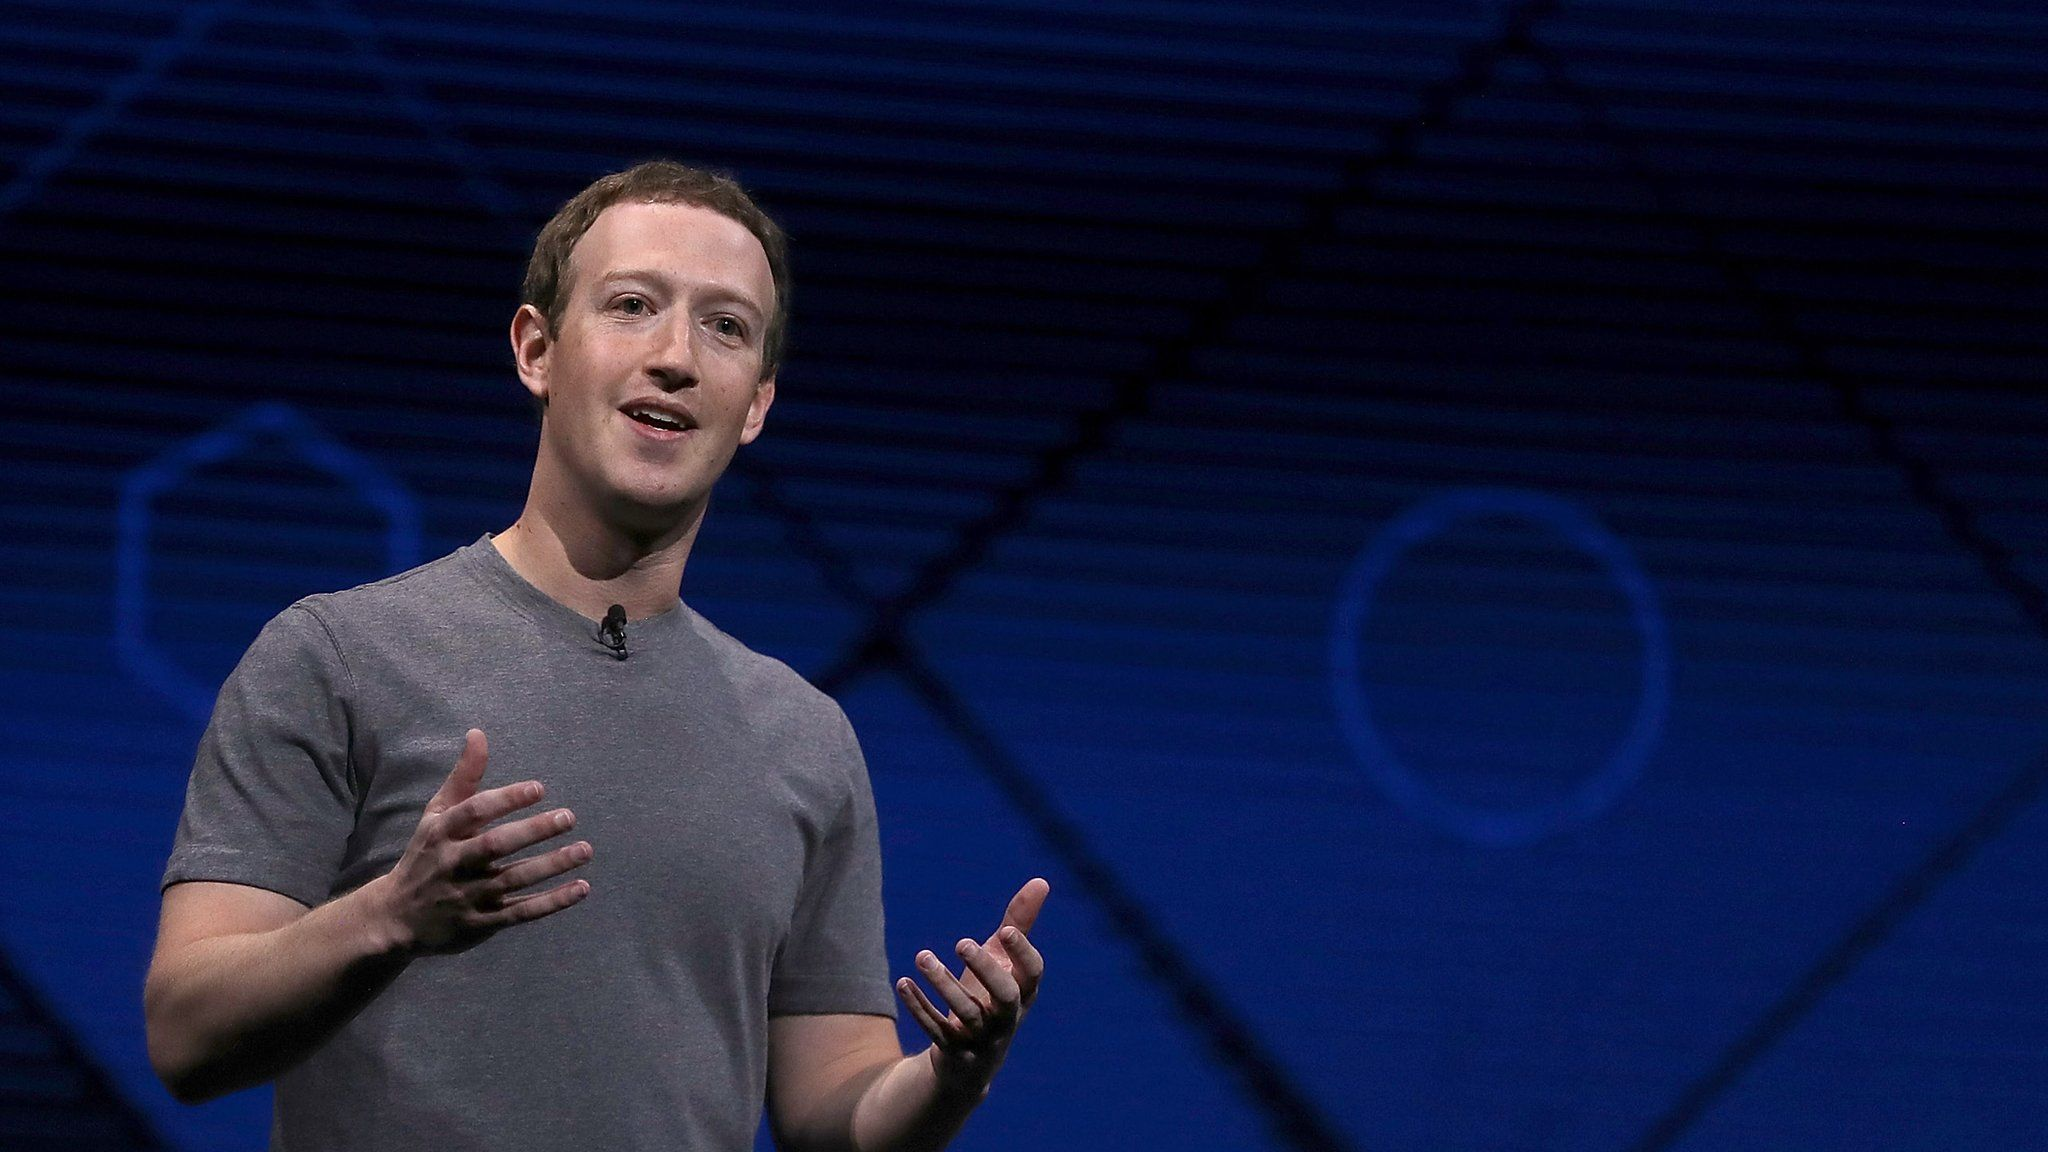 Founder Mark Zuckerberg says Facebook is making political ads more transparent.